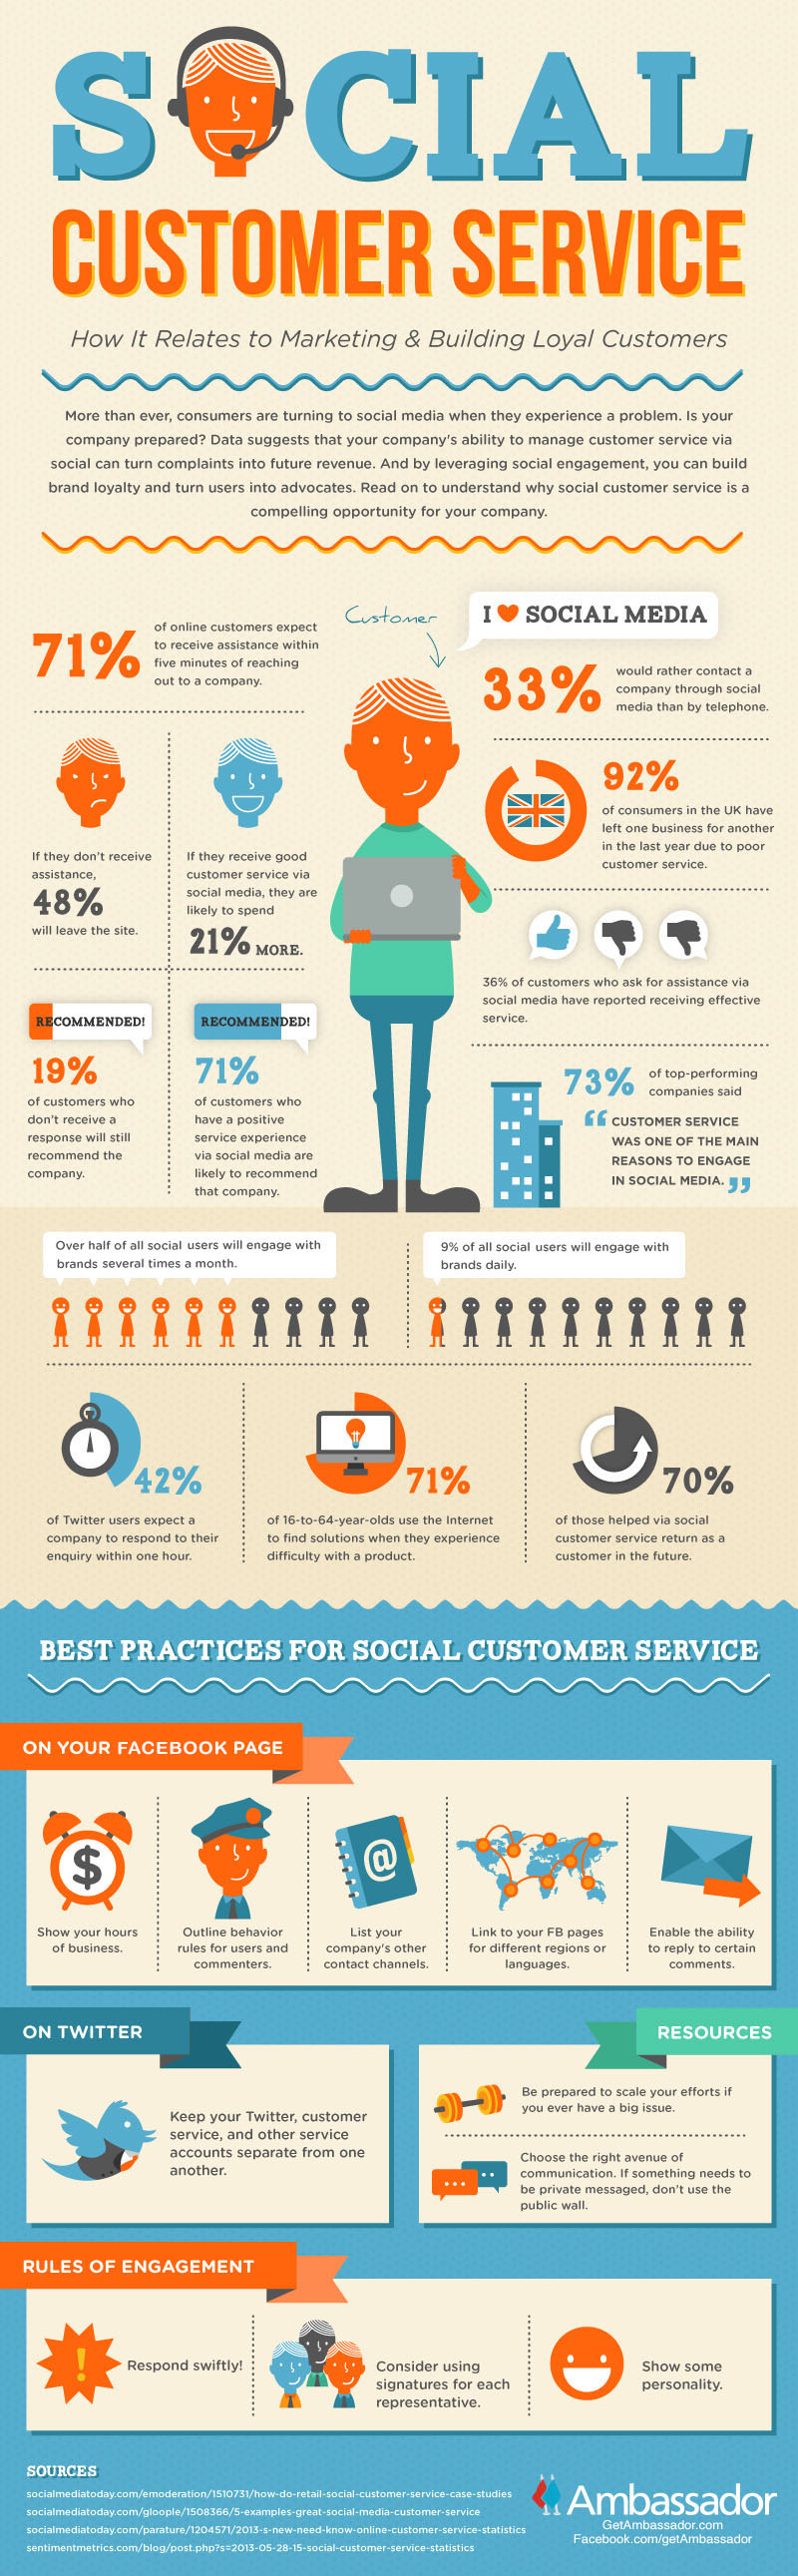 importance of good customer service skills in social media customer service skills